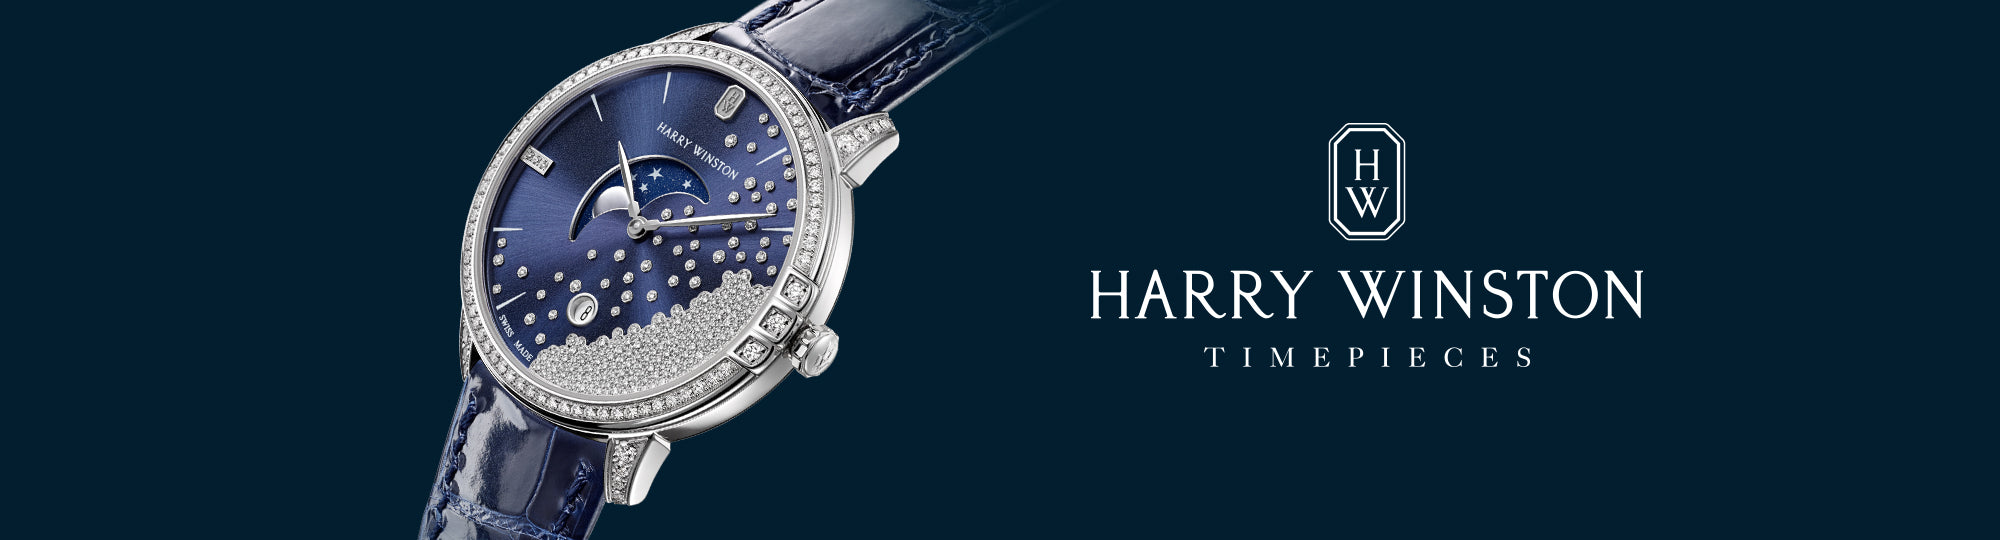 Manfredi Jewels is an Authorized Harry Winston Dealer.